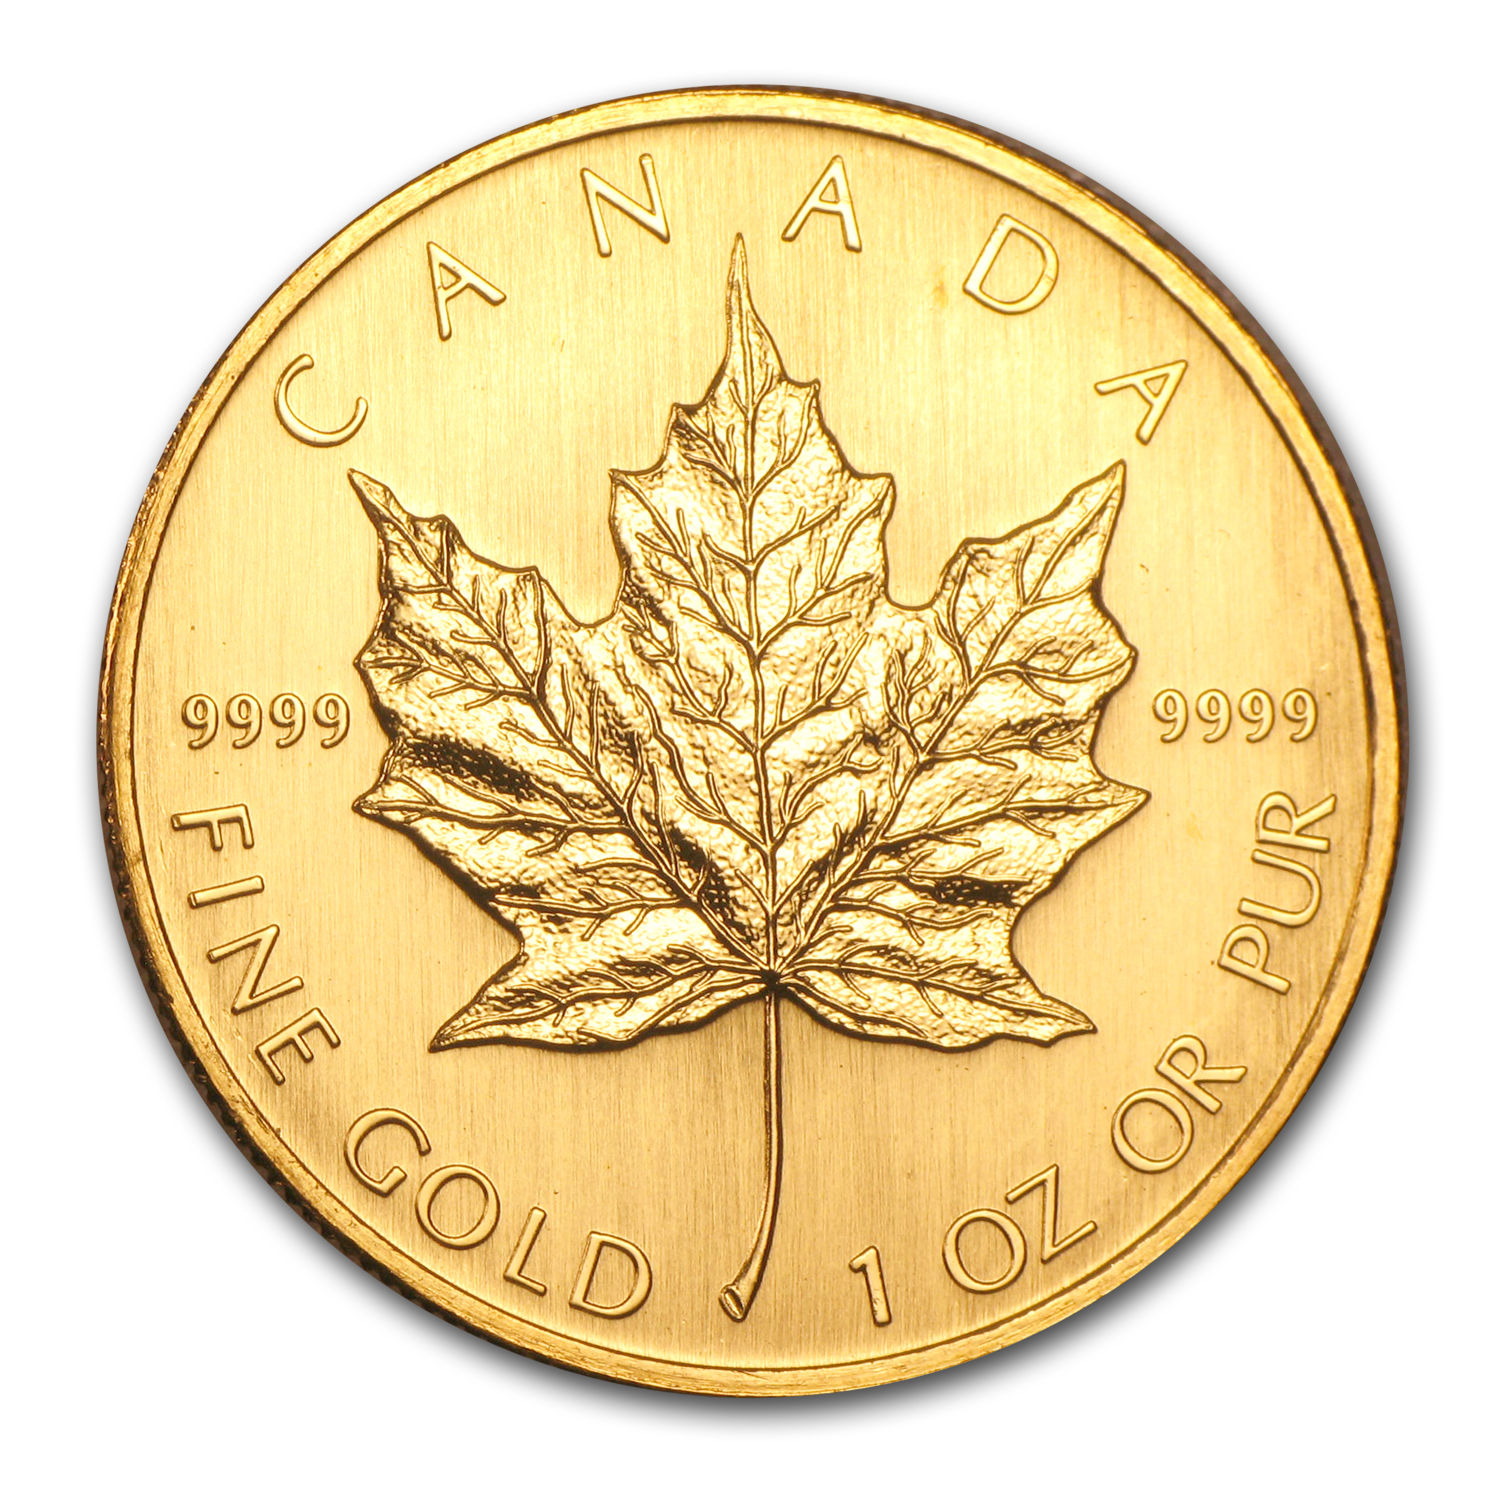 2003 1 oz Gold Canadian Maple Leaf - Brilliant Uncirculated